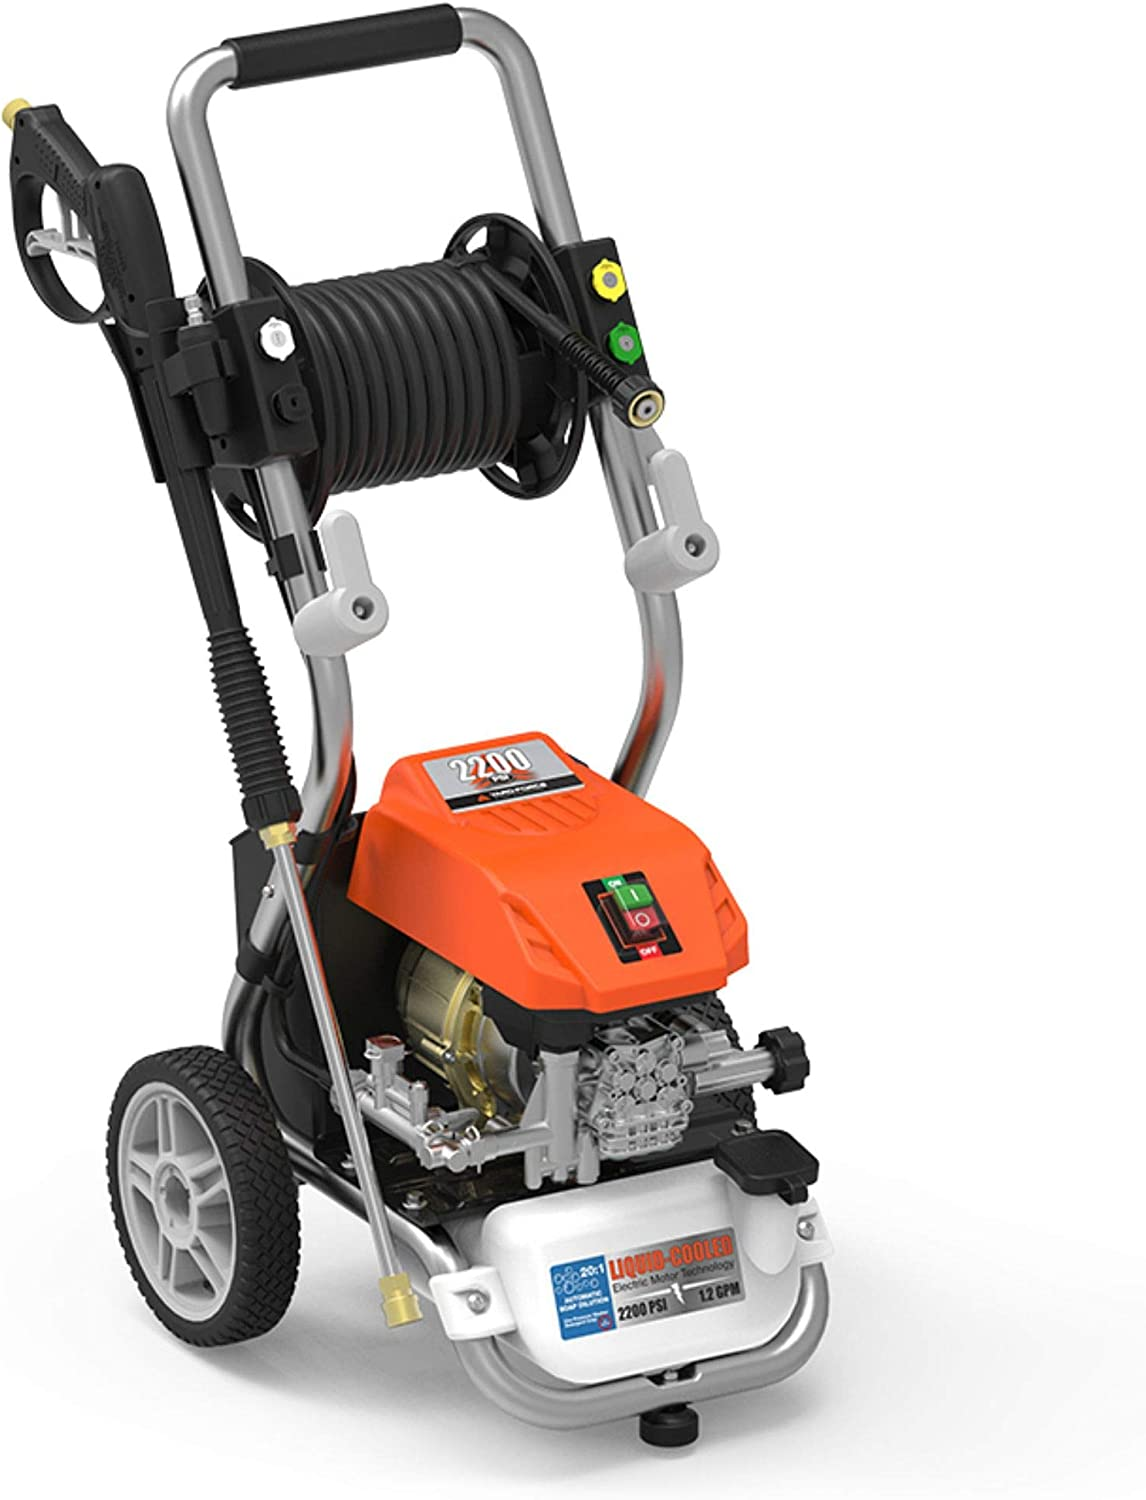 "YARD FORCE YF2200LC, 1.2 GPM, 13 amp Water-Cooled Motor, 25' ""Live"" Hose Reel & Bonus Turbo Nozzle, 1 Gallon Soal Tank 2200 Psi Electric Pressure Washer, Orange/Black"